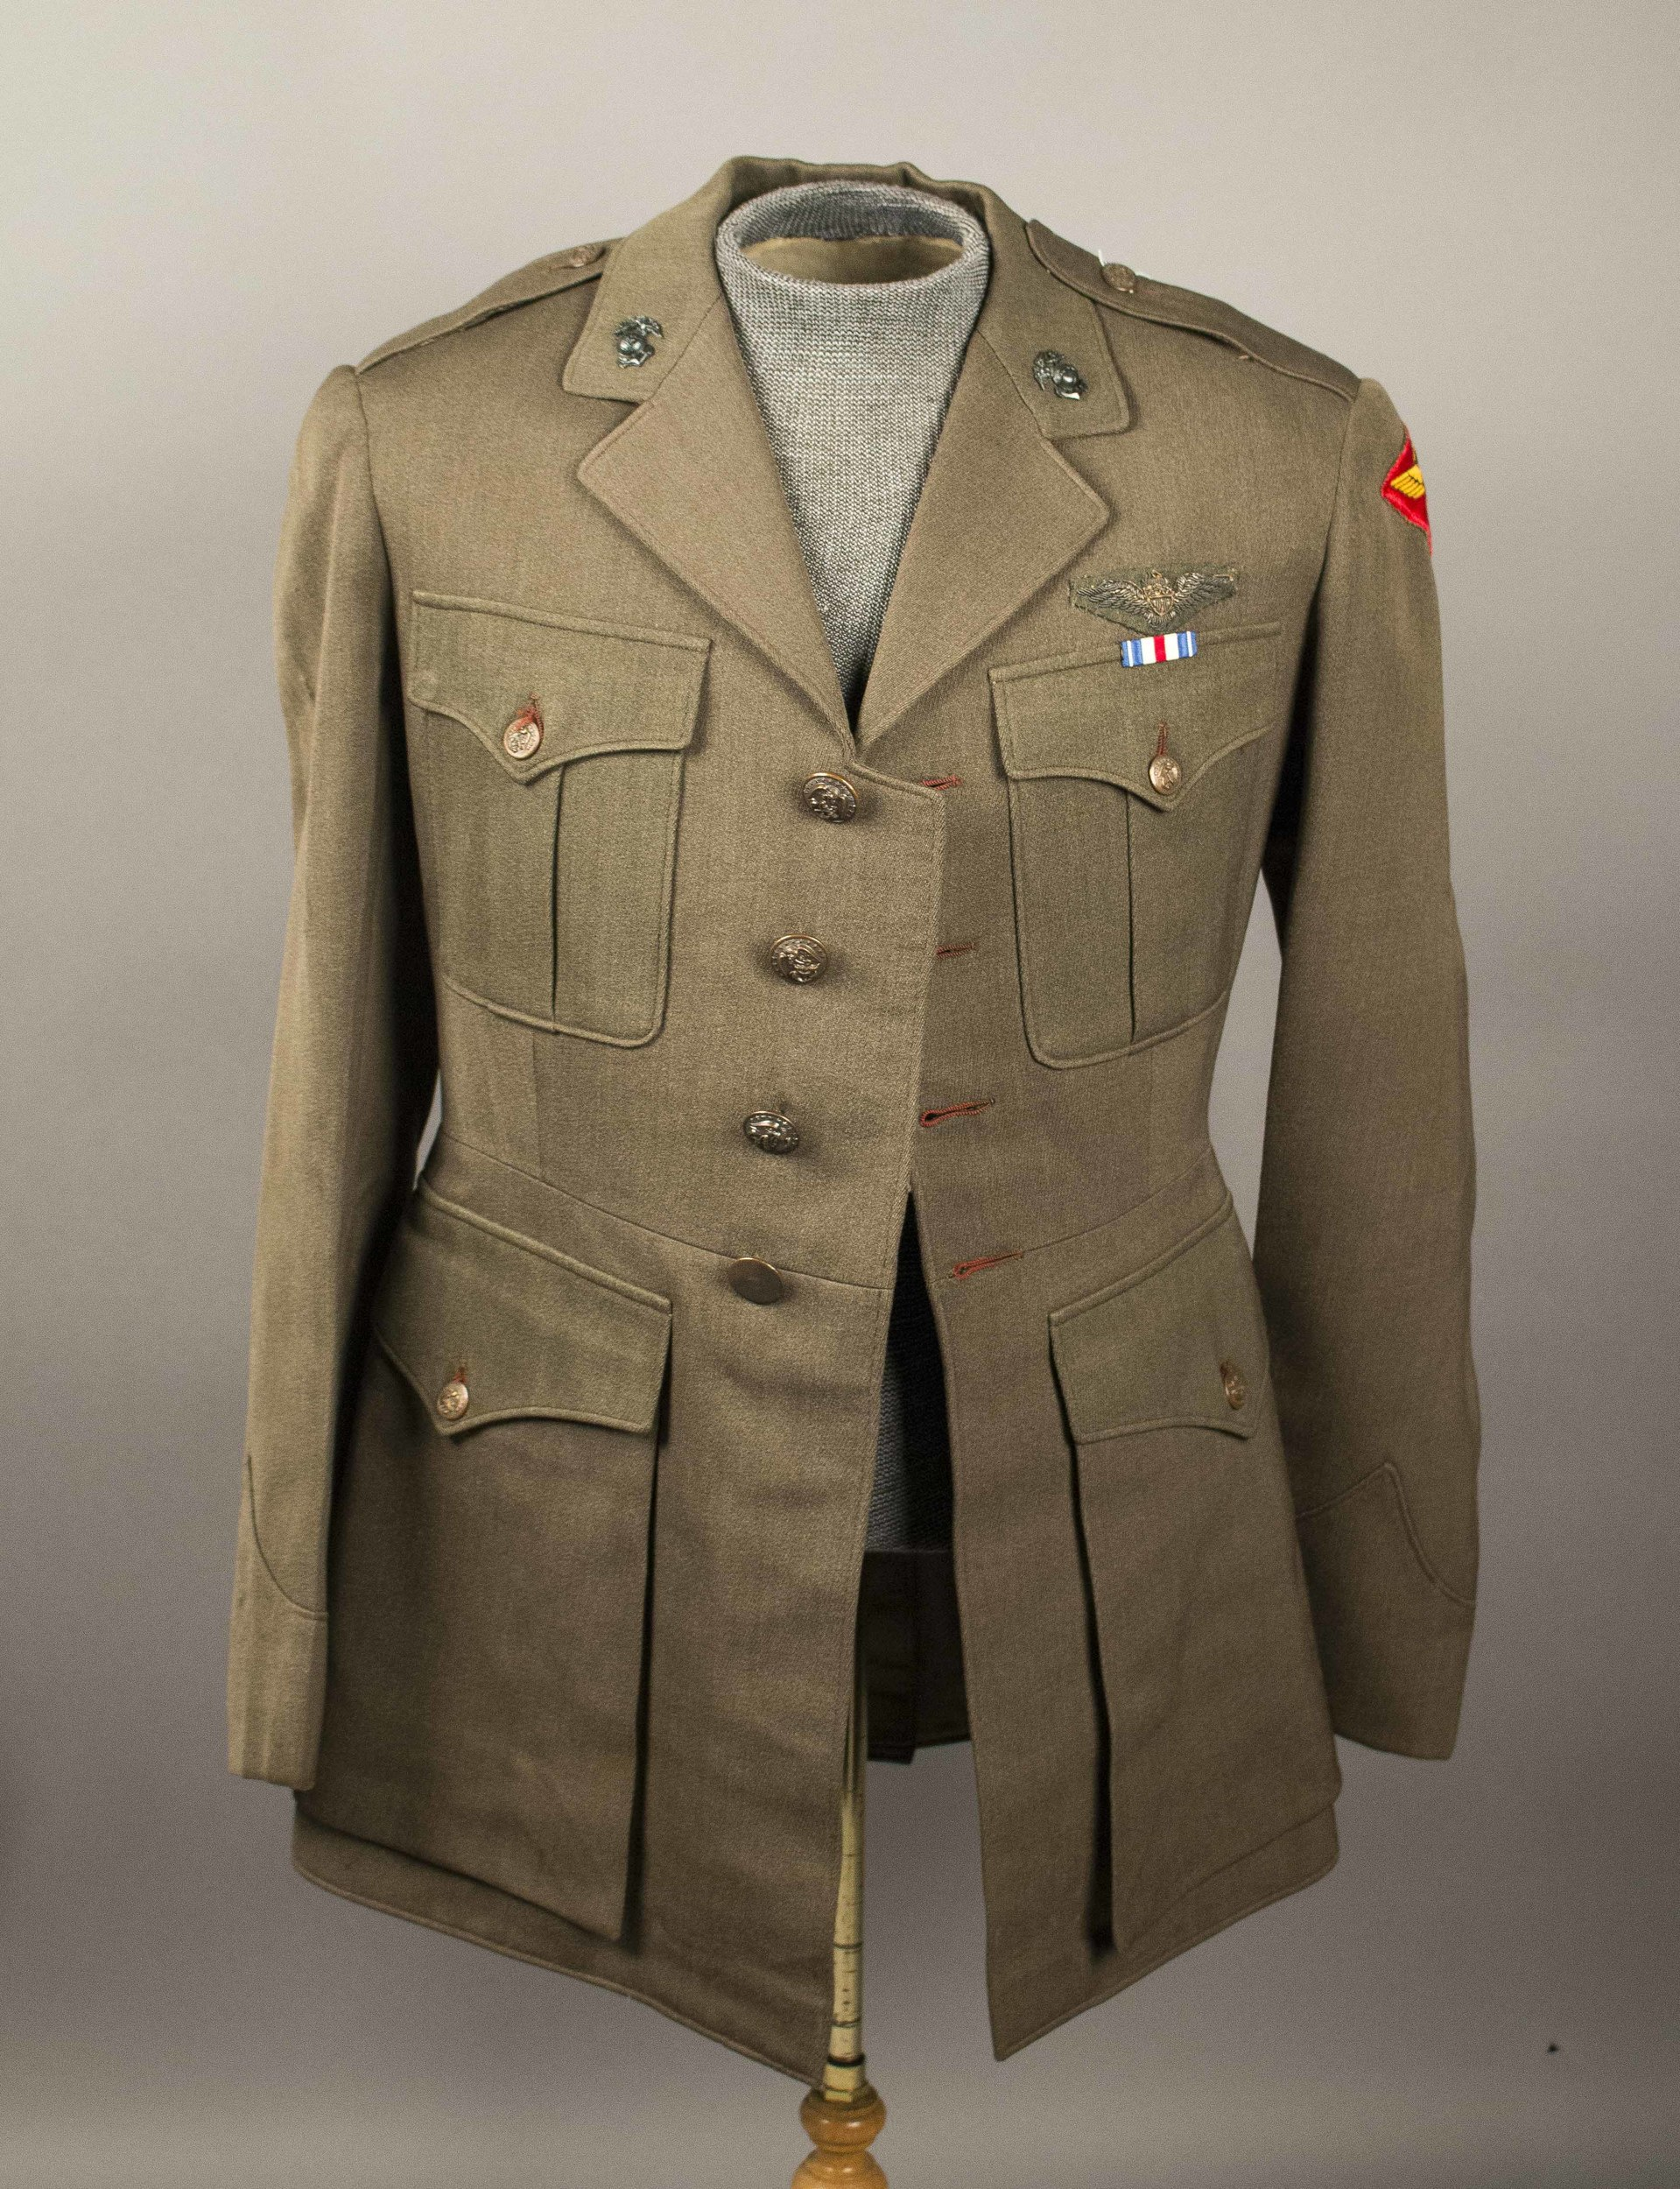 2 US Pilots' Uniforms, 8th Air Force with rare RAF 1942 badge for